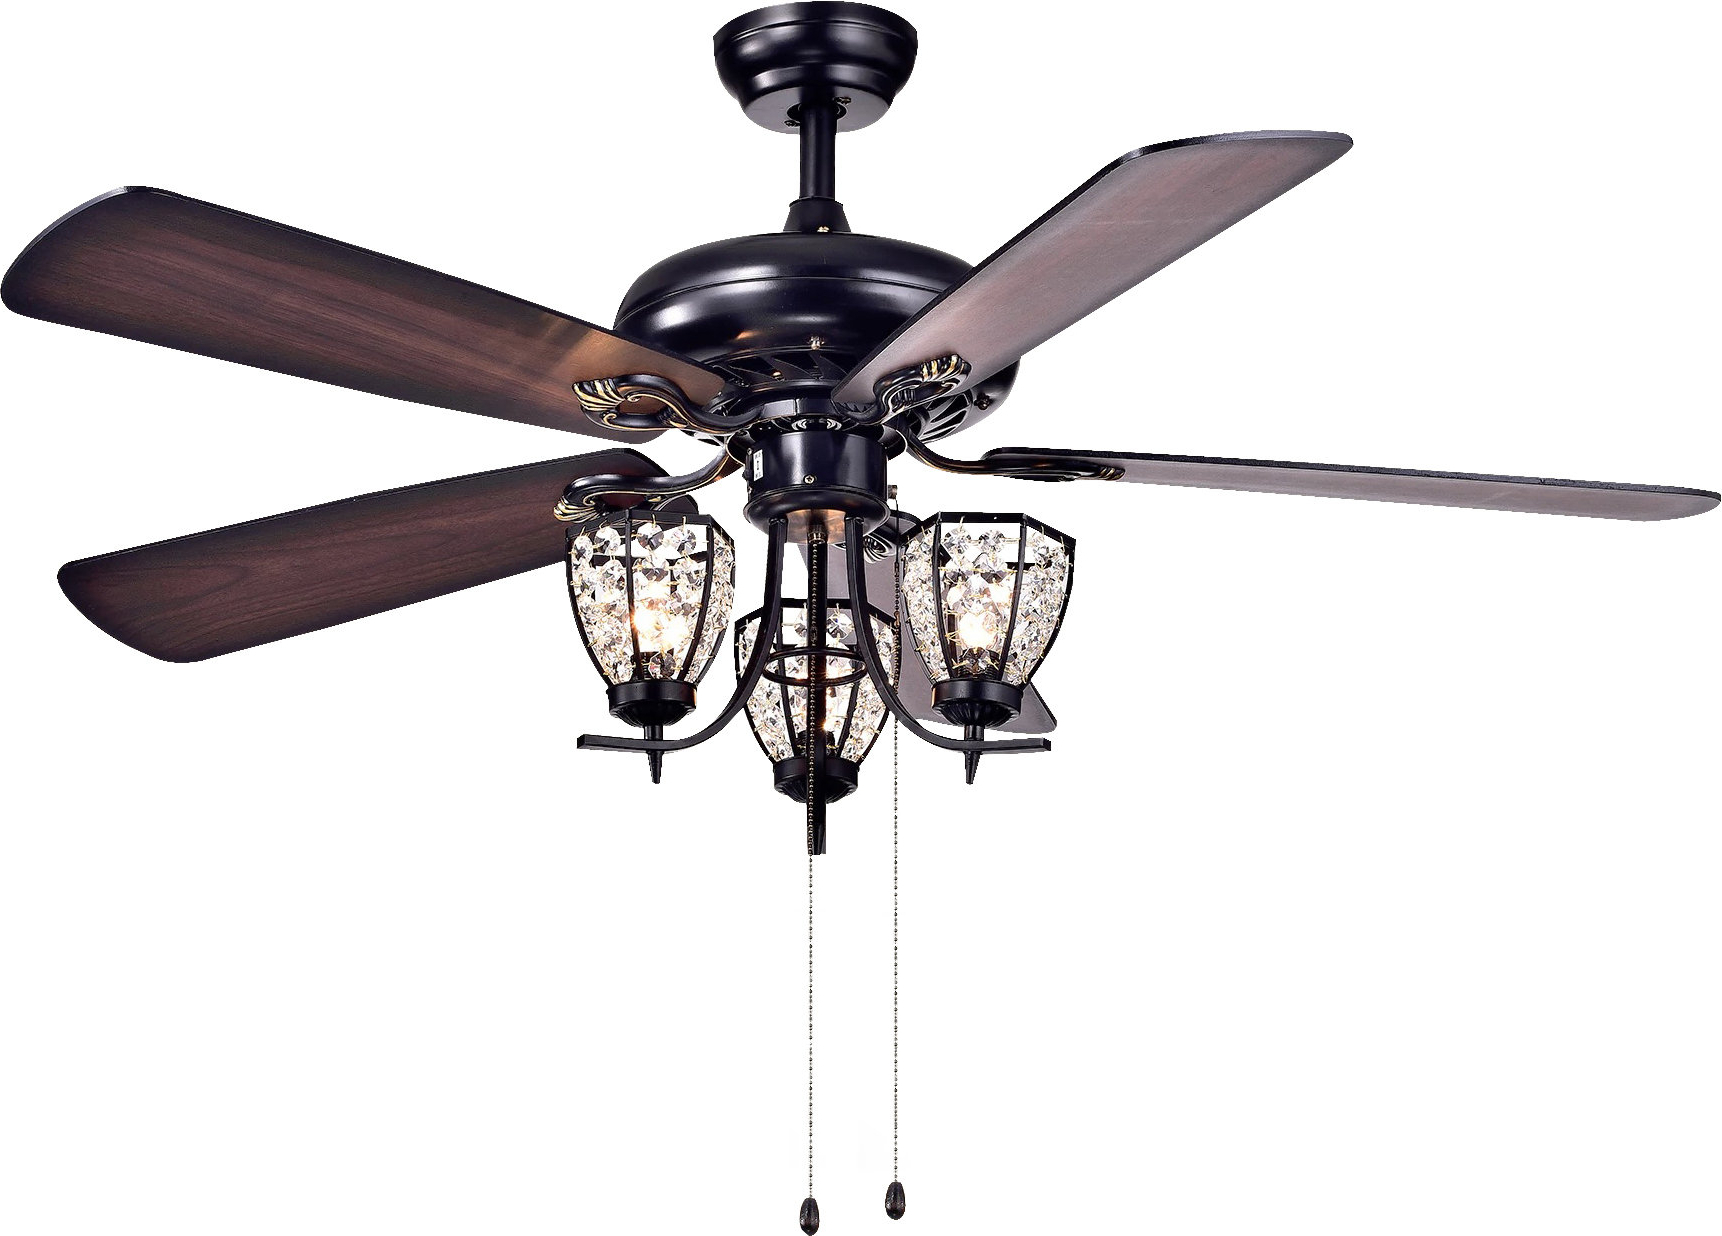 Dunaghy 5 Blade Ceiling Fans With Latest 5 Blade Ceiling Fan, Light Kit Included (View 8 of 20)